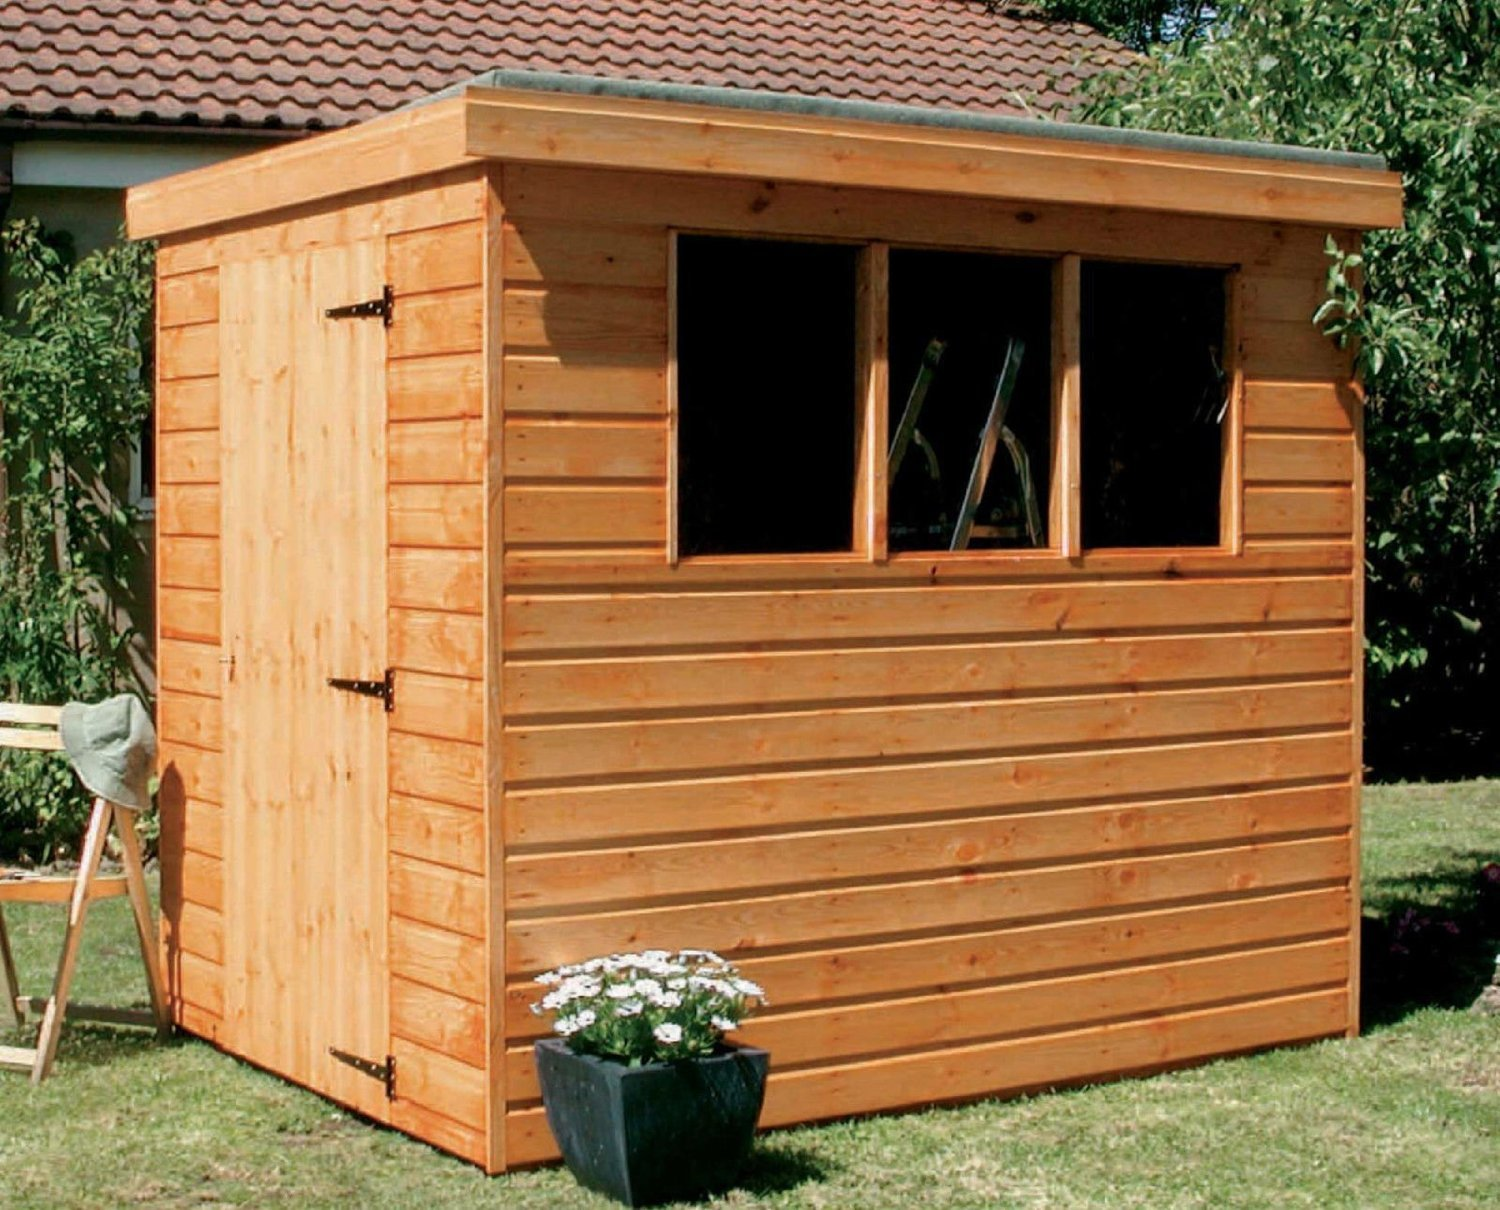 Exceptionnel 6x5u0027 Pent Garden Shed   Heavy Duty Tongue U0026 Groove Wood: Amazon.co.uk:  Kitchen U0026 Home